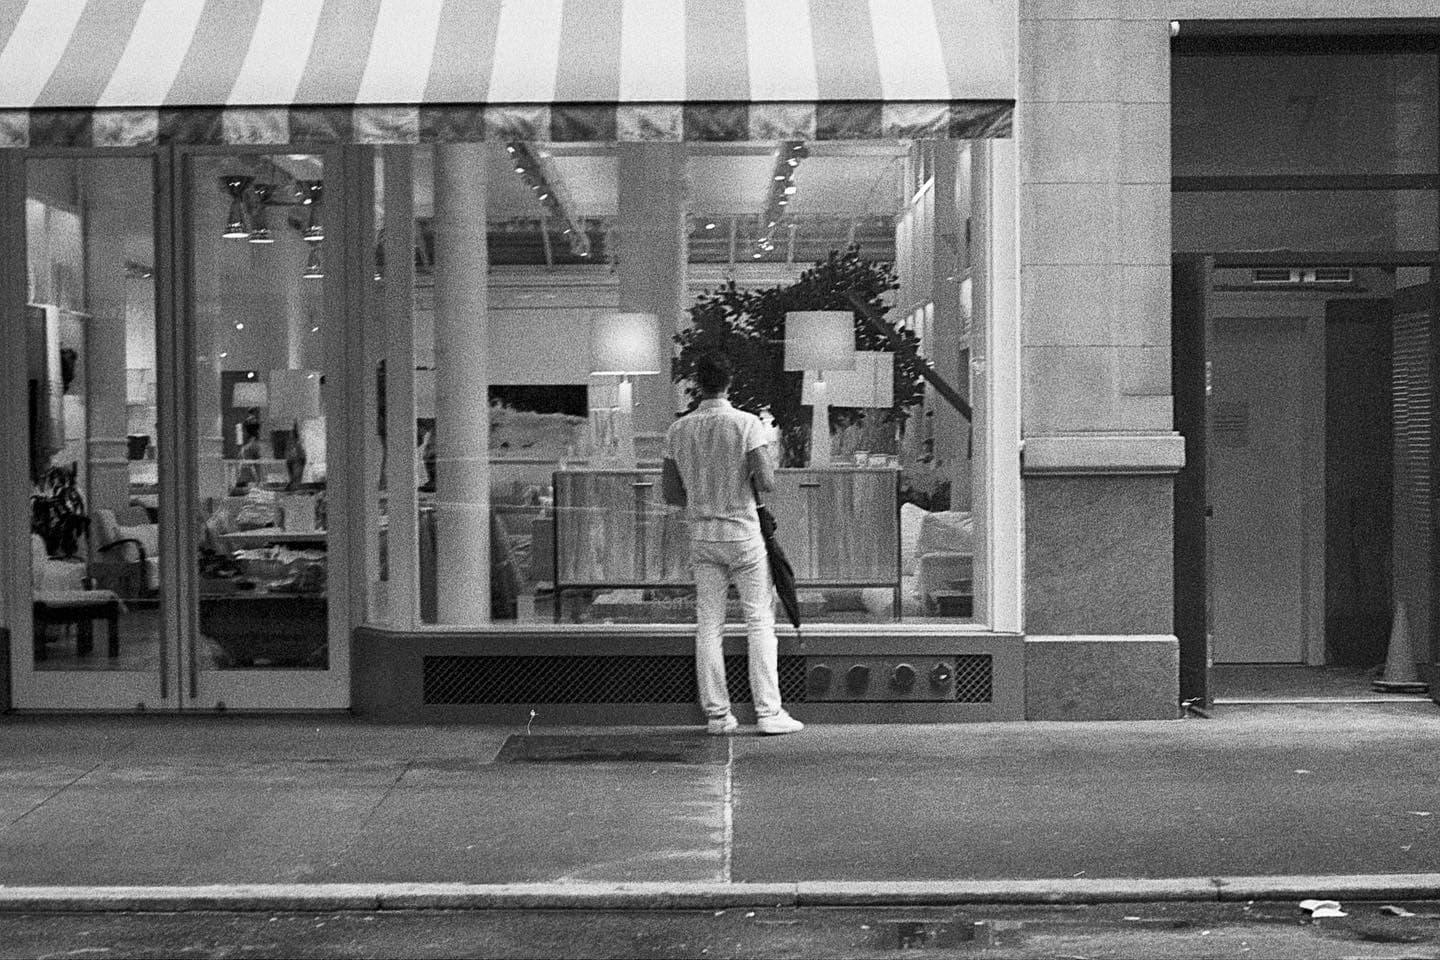 person staring into store window, wearing a striped shirt that matched the striped awning above him